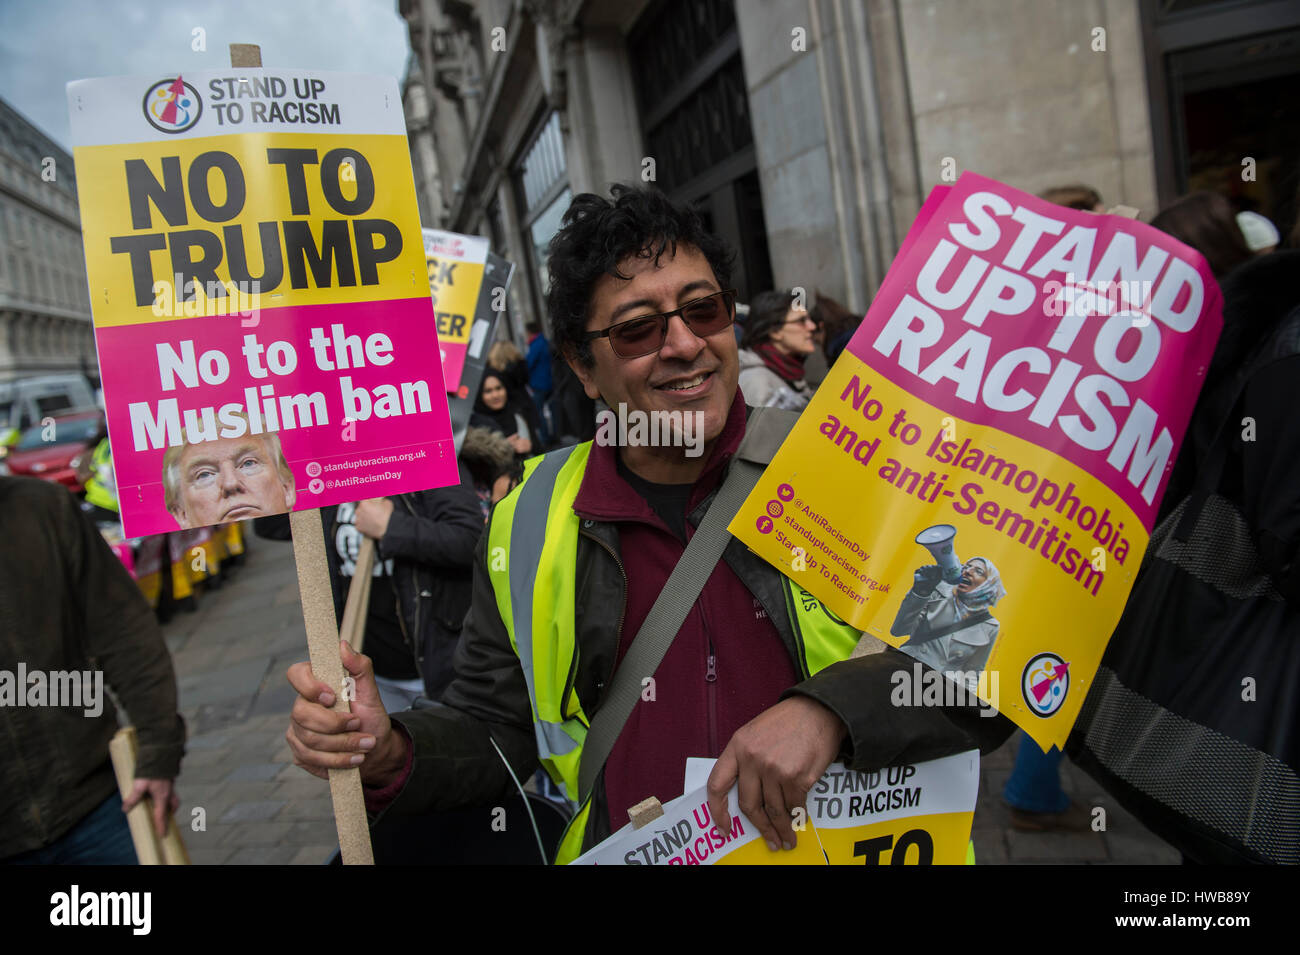 London, UK. 18th March, 2017. A march against racism, organised by Stand Up to Racism and supporterd by the TUC - Stock Image